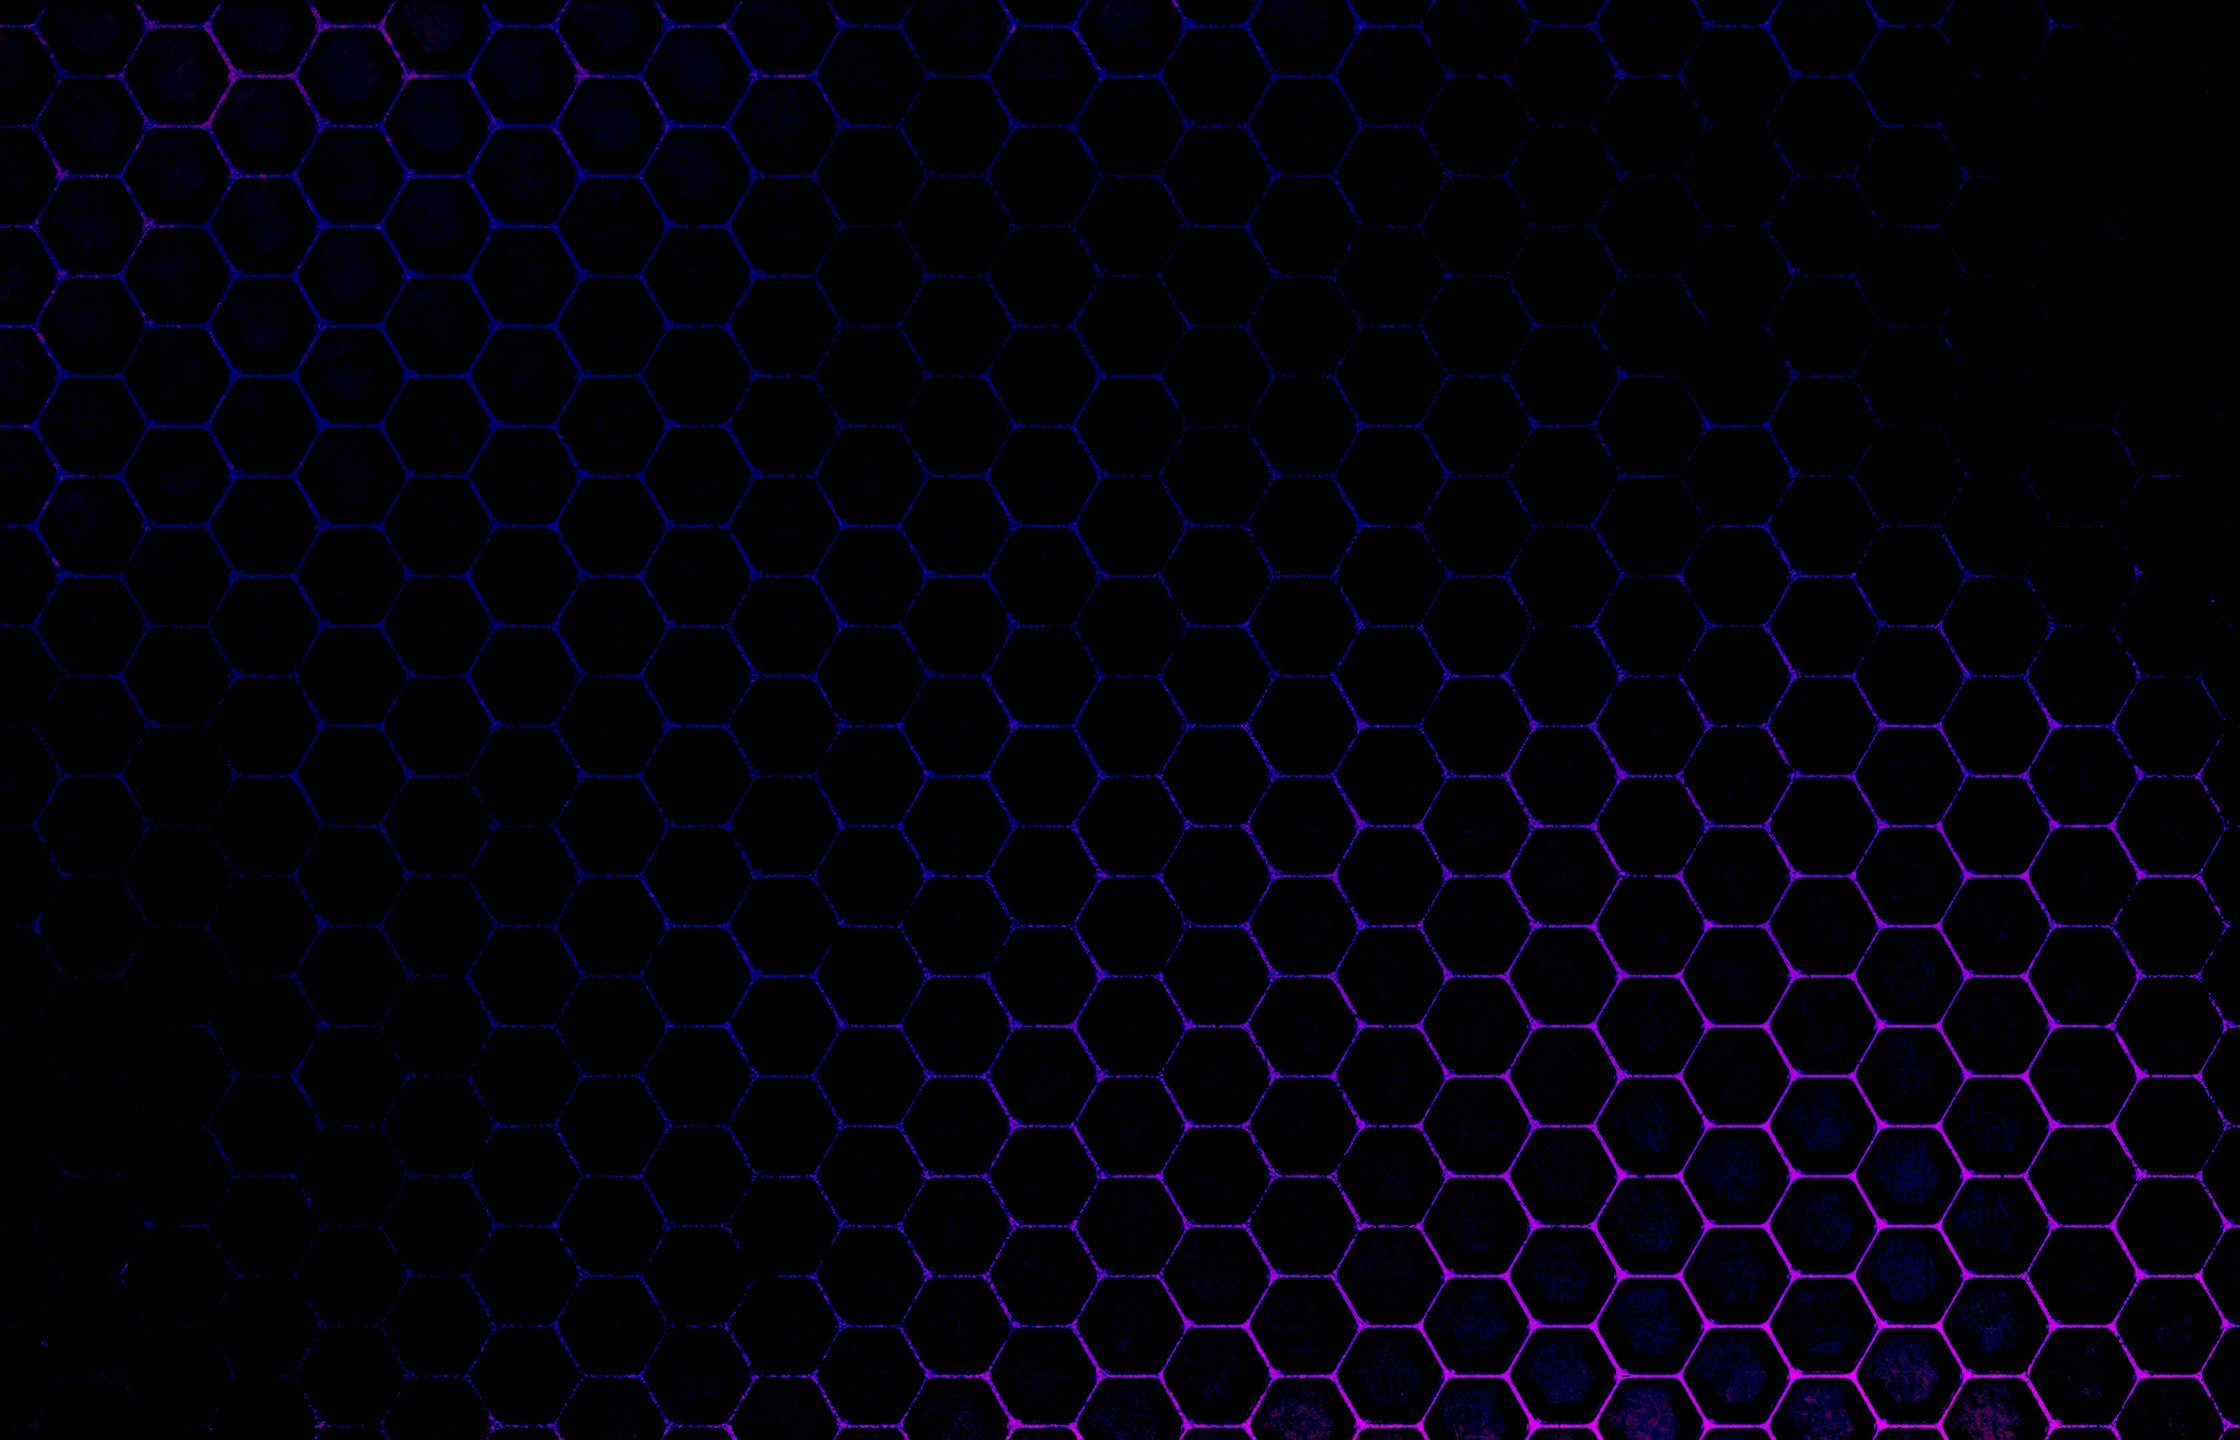 heavy duty dark pattern wallpaper - photo #16